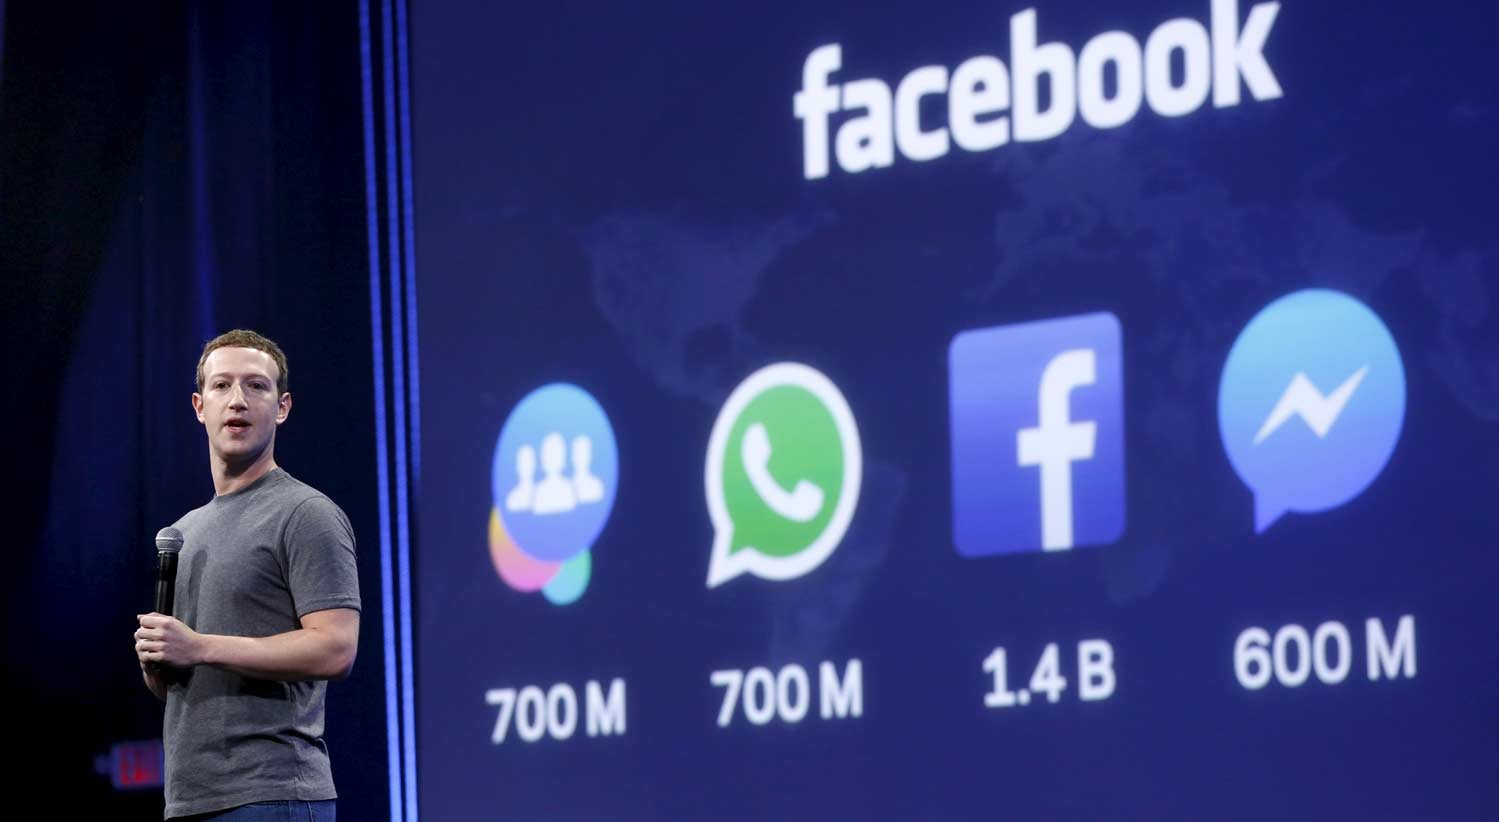 Facebook suspende 200 apps